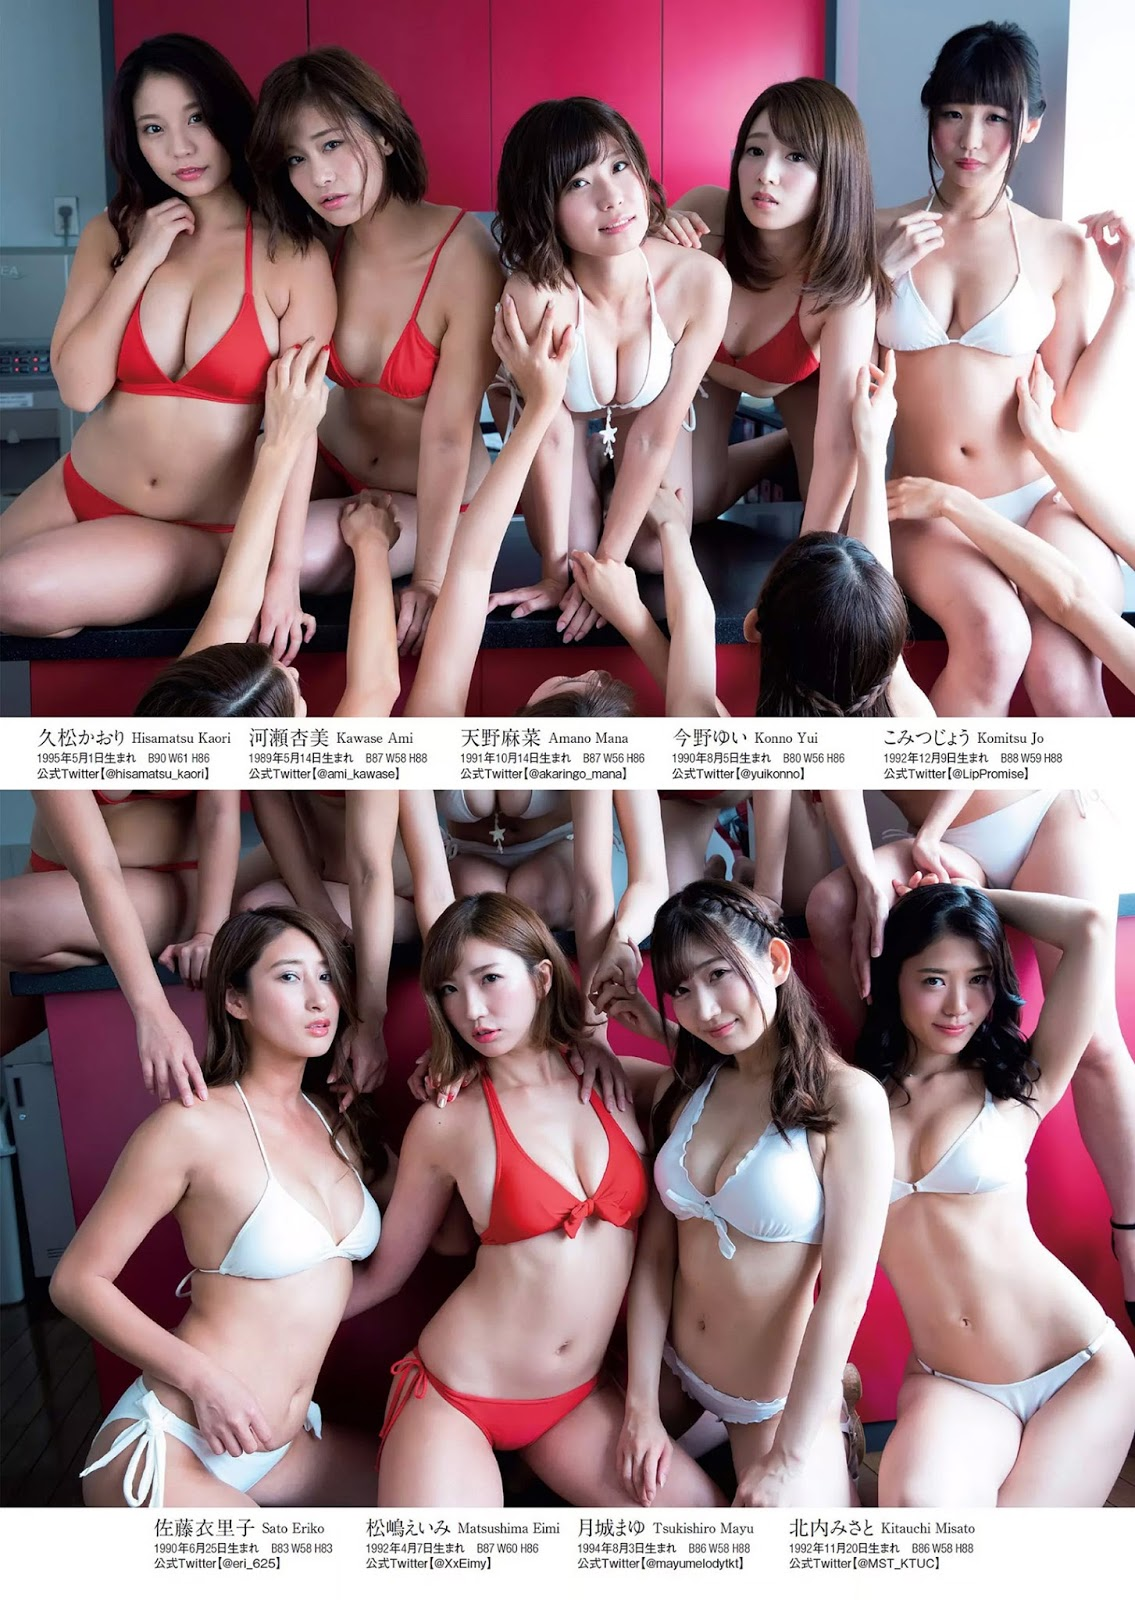 51st WPB Anniversary, Weekly Playboy 2017 No.43 (週刊プレイボーイ 2017年43号)